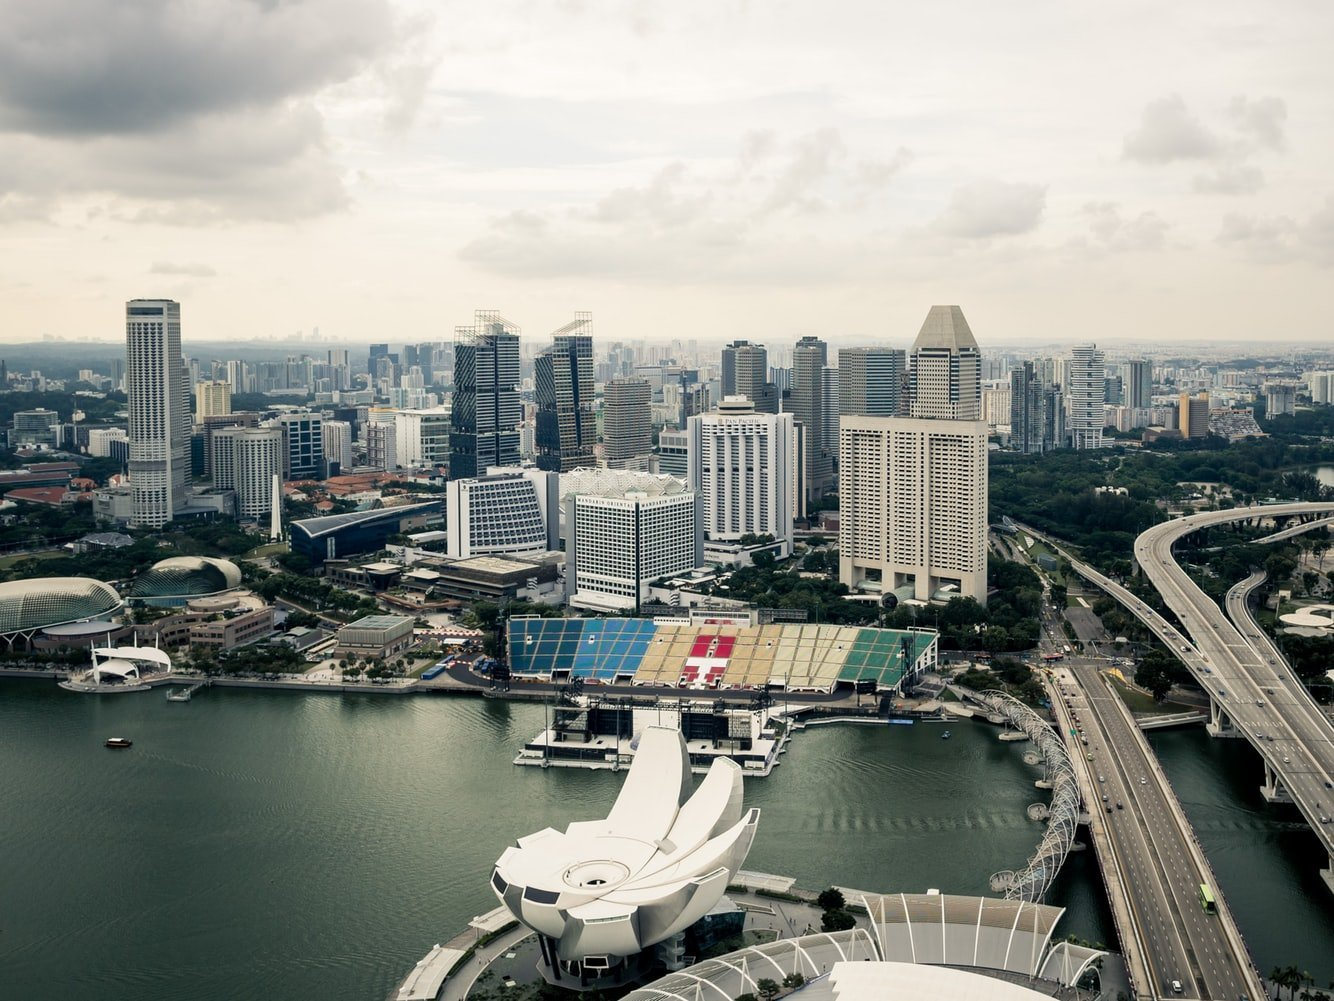 Singapore Training Employment Pass allows foreigners to receive work training in Singapore.